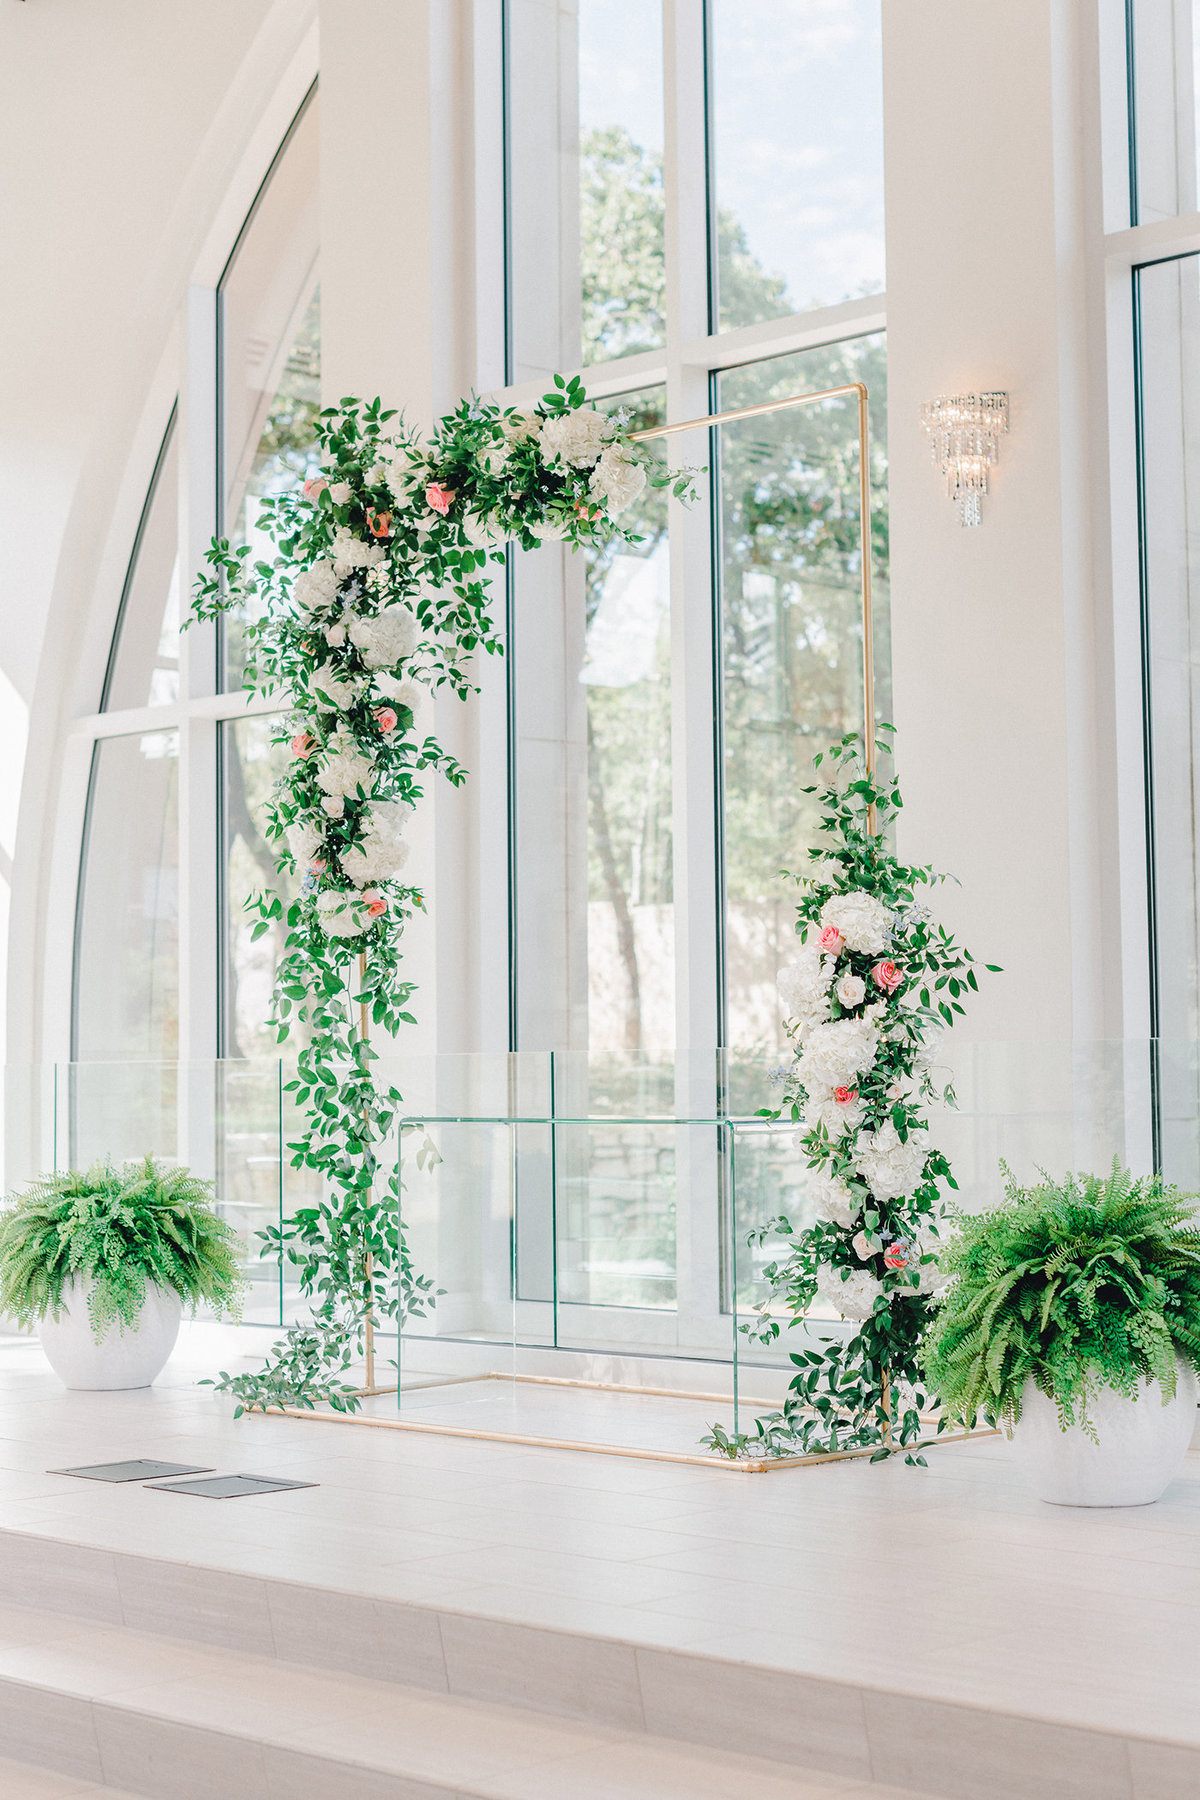 Dallas Wedding Floral Design - A Stylish Soiree - Dallas Wedding Florist - 96